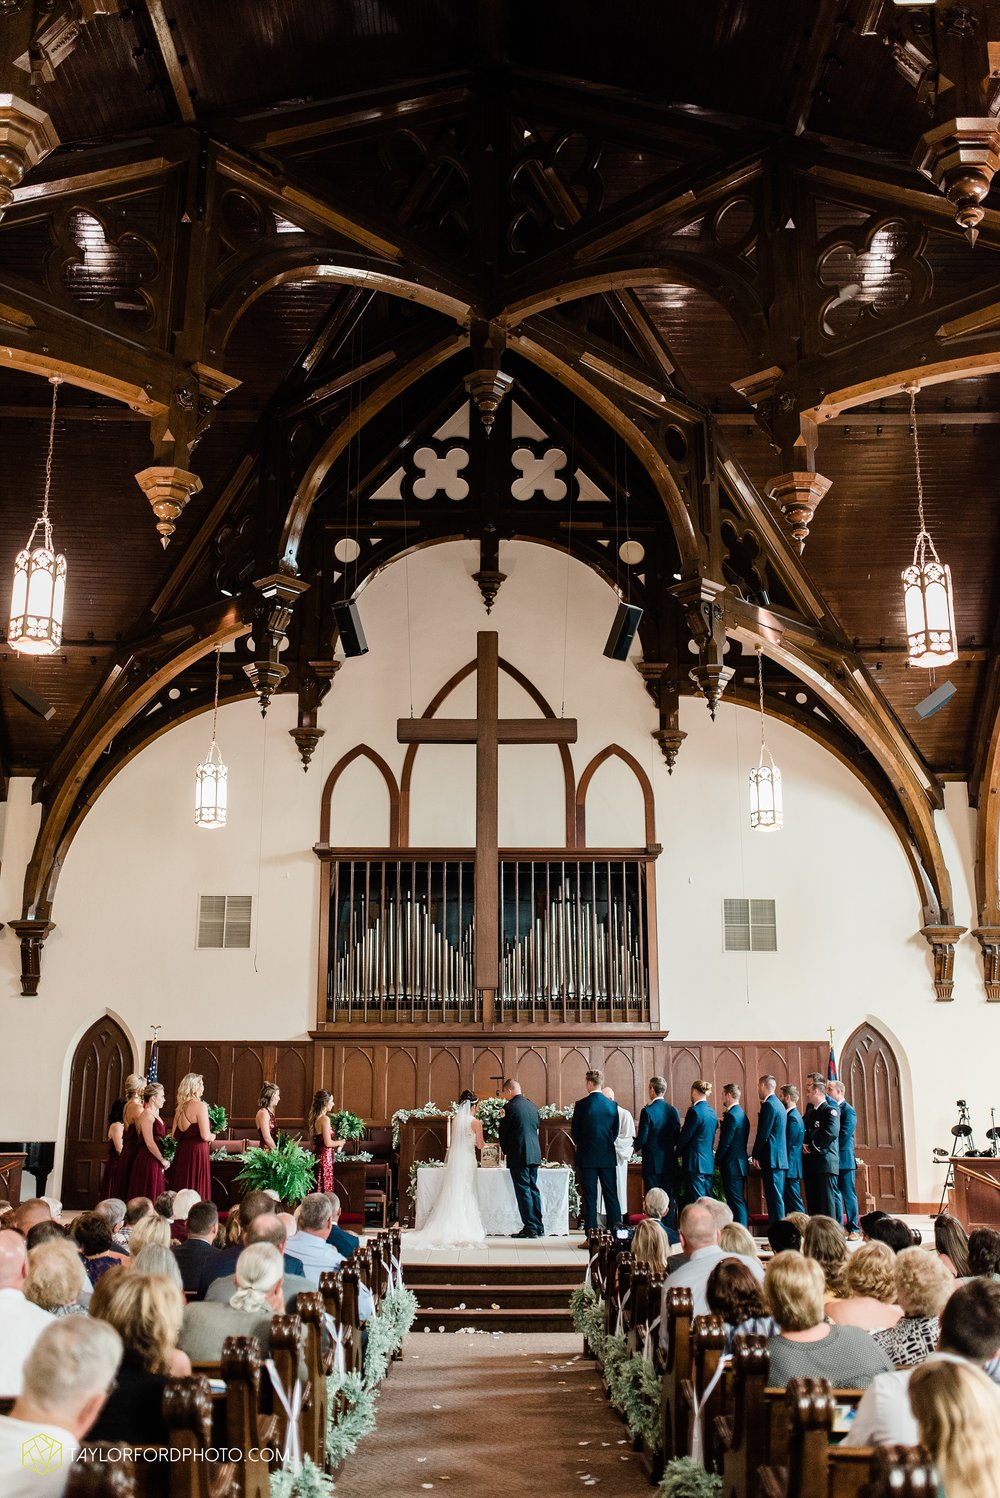 van-wert-ohio-first-united-methodist-church-county-dairy-barn-wedding-photographer-taylor-ford-photography_9833.jpg